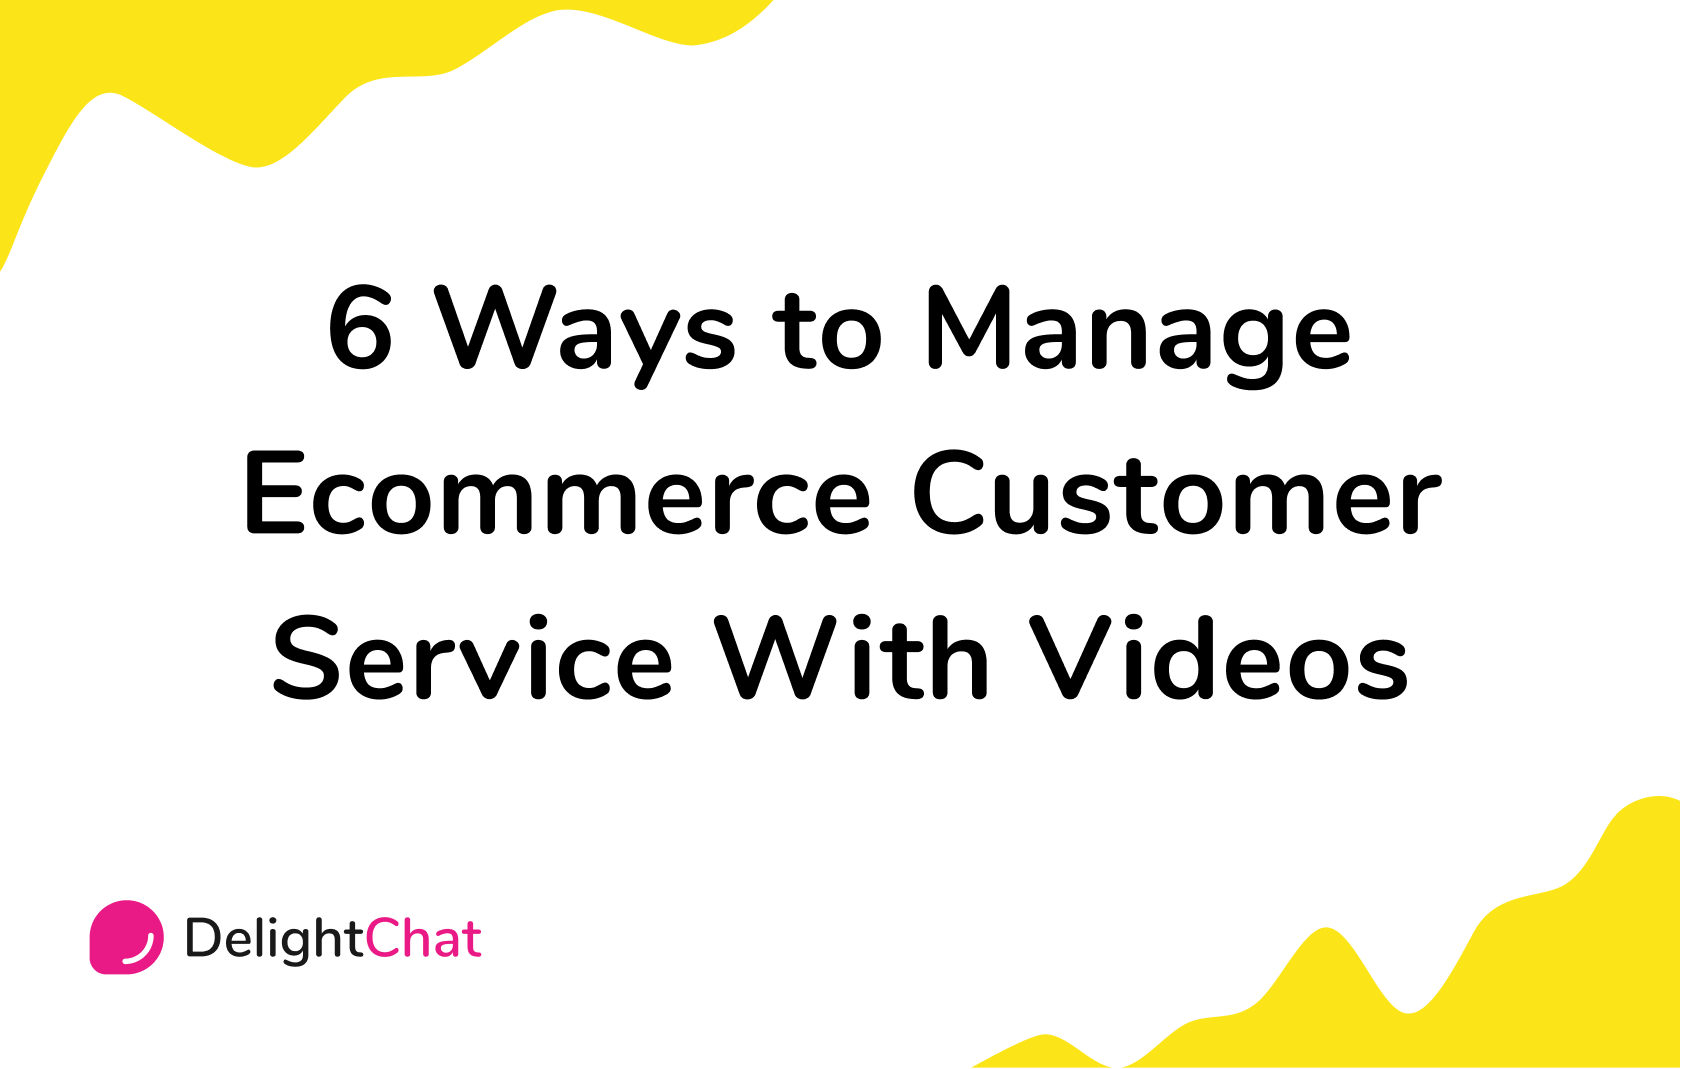 6 Ways to Manage Ecommerce Customer Service With Videos